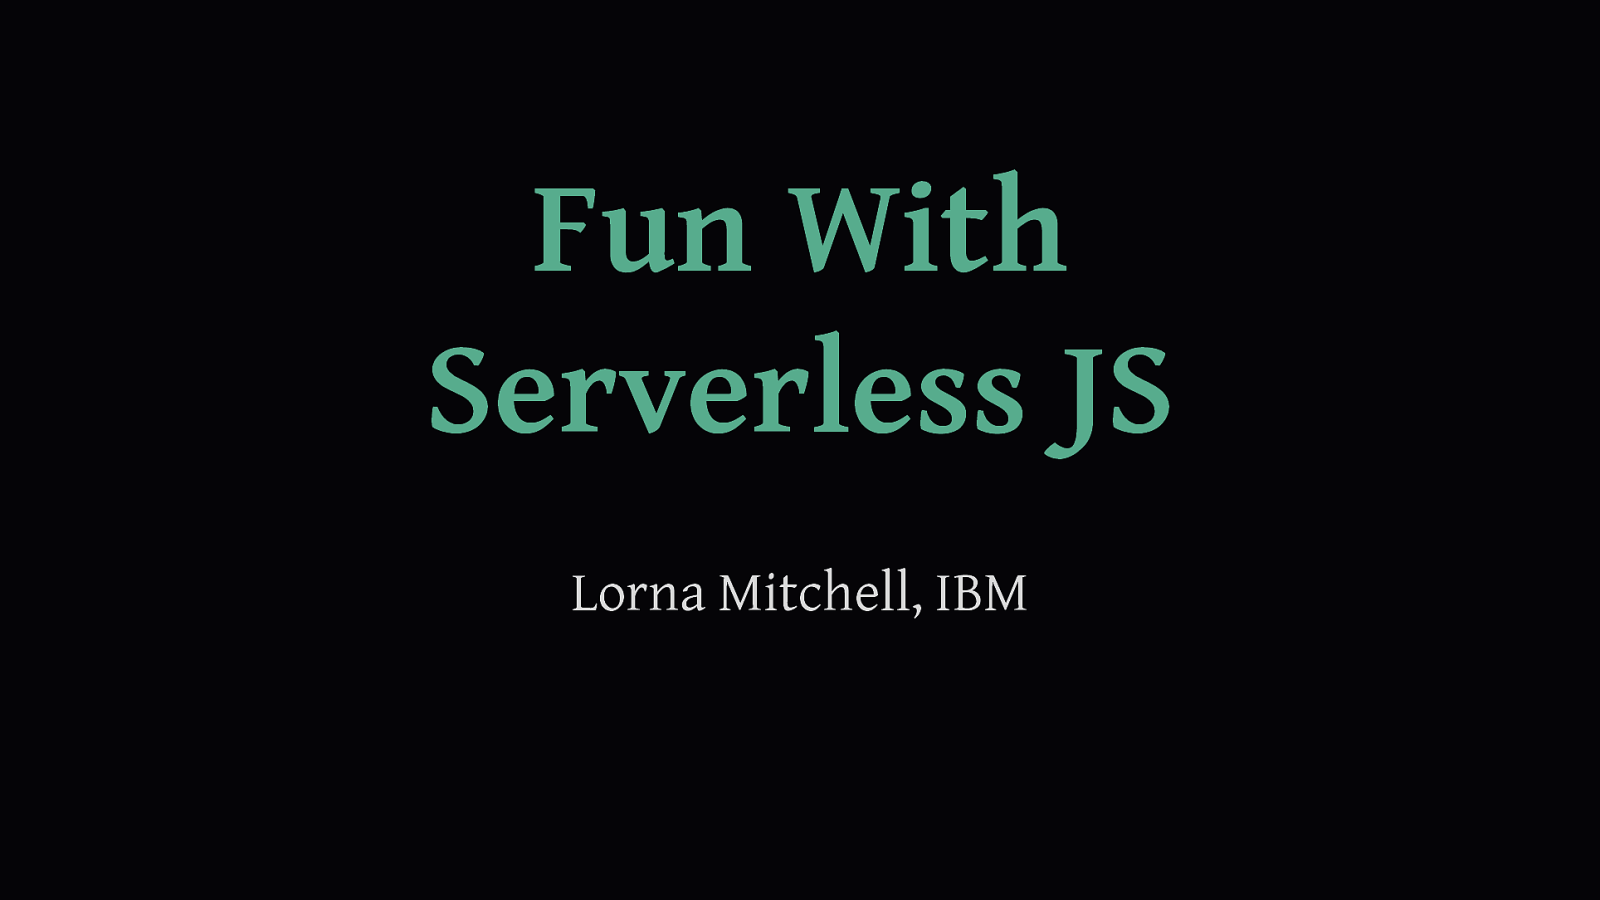 Fun With Serverless JS